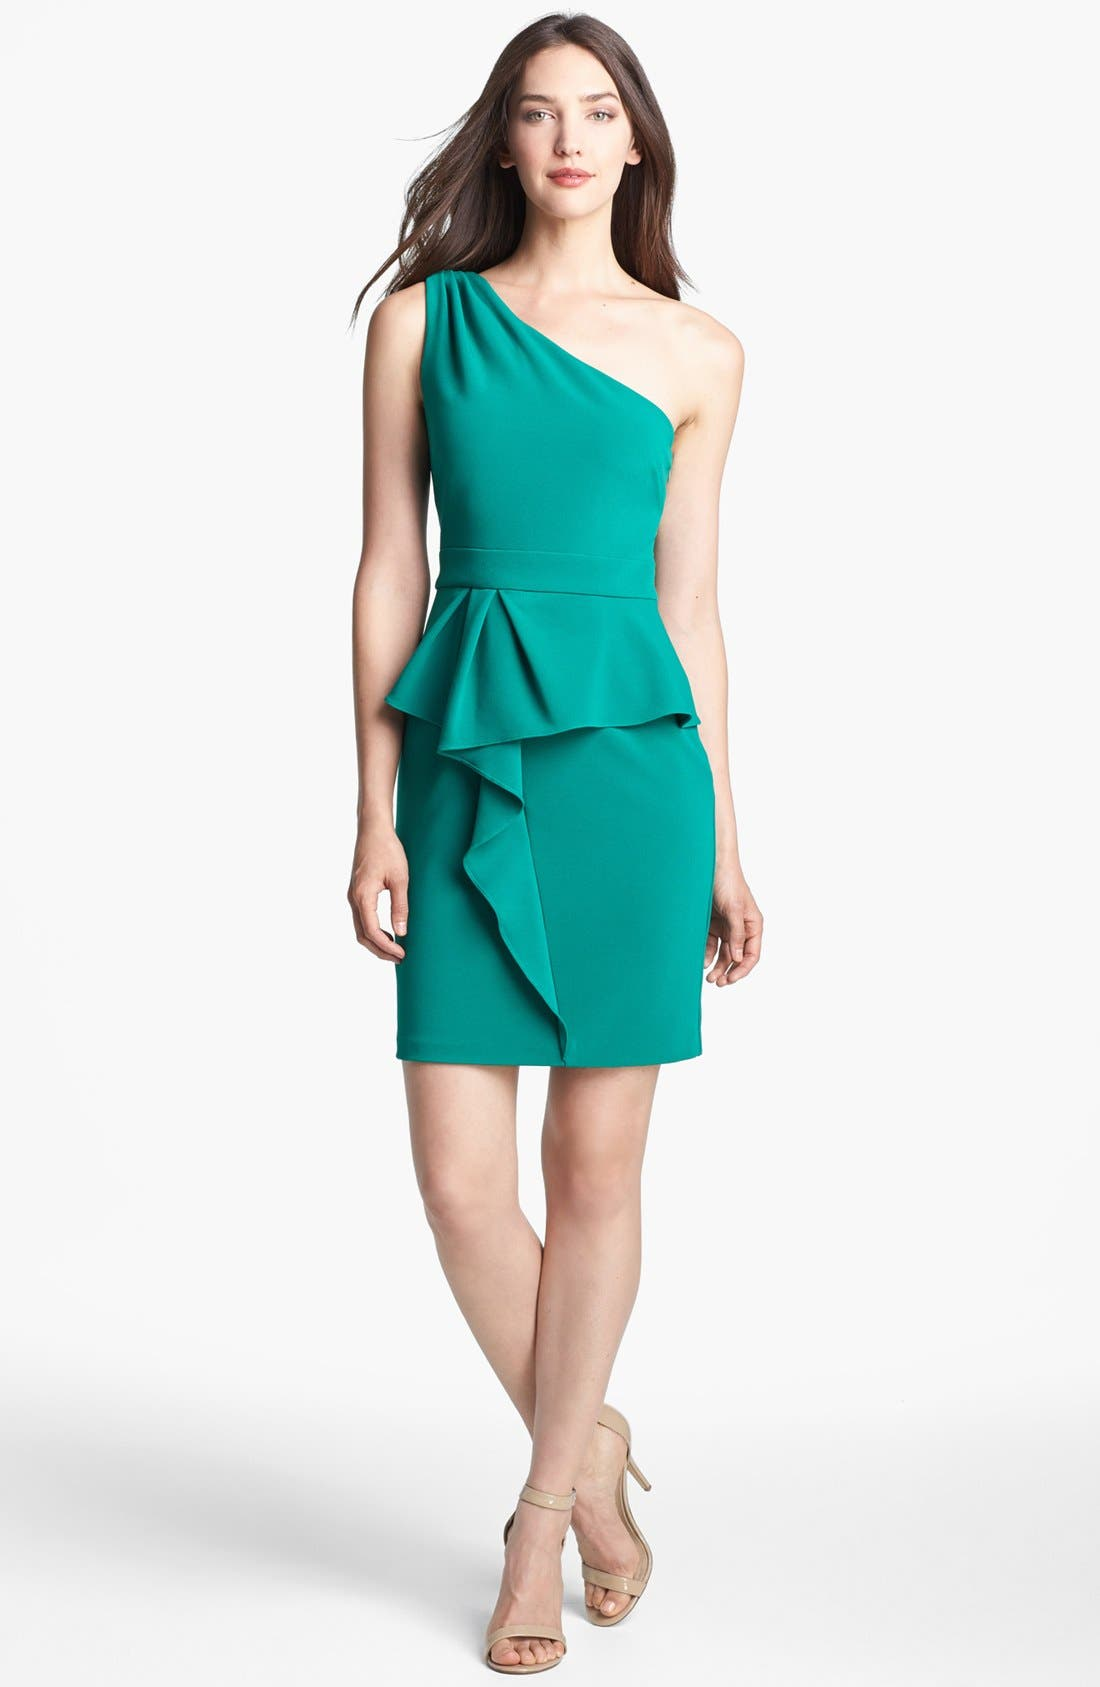 Alternate Image 1 Selected - Hailey by Adrianna Papell One Shoulder Peplum Dress (Online Only)